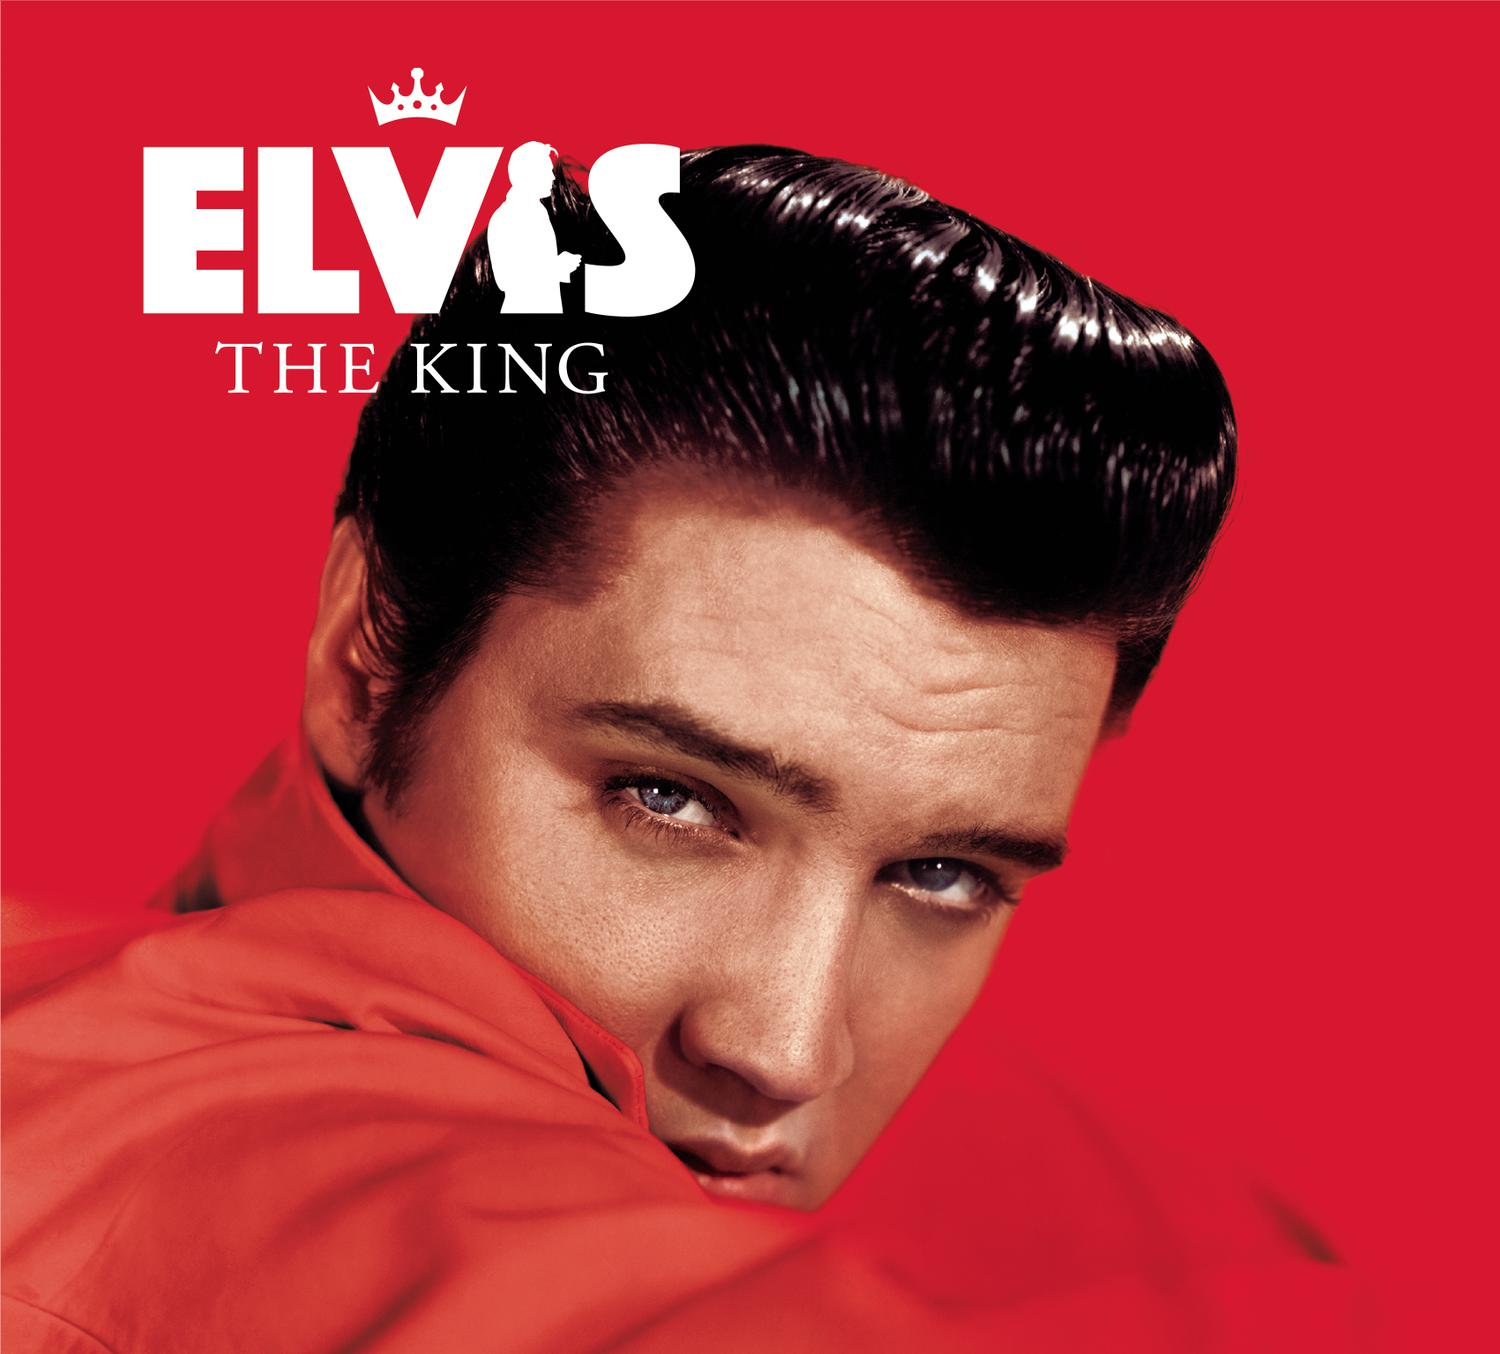 The King 75th Anniversary